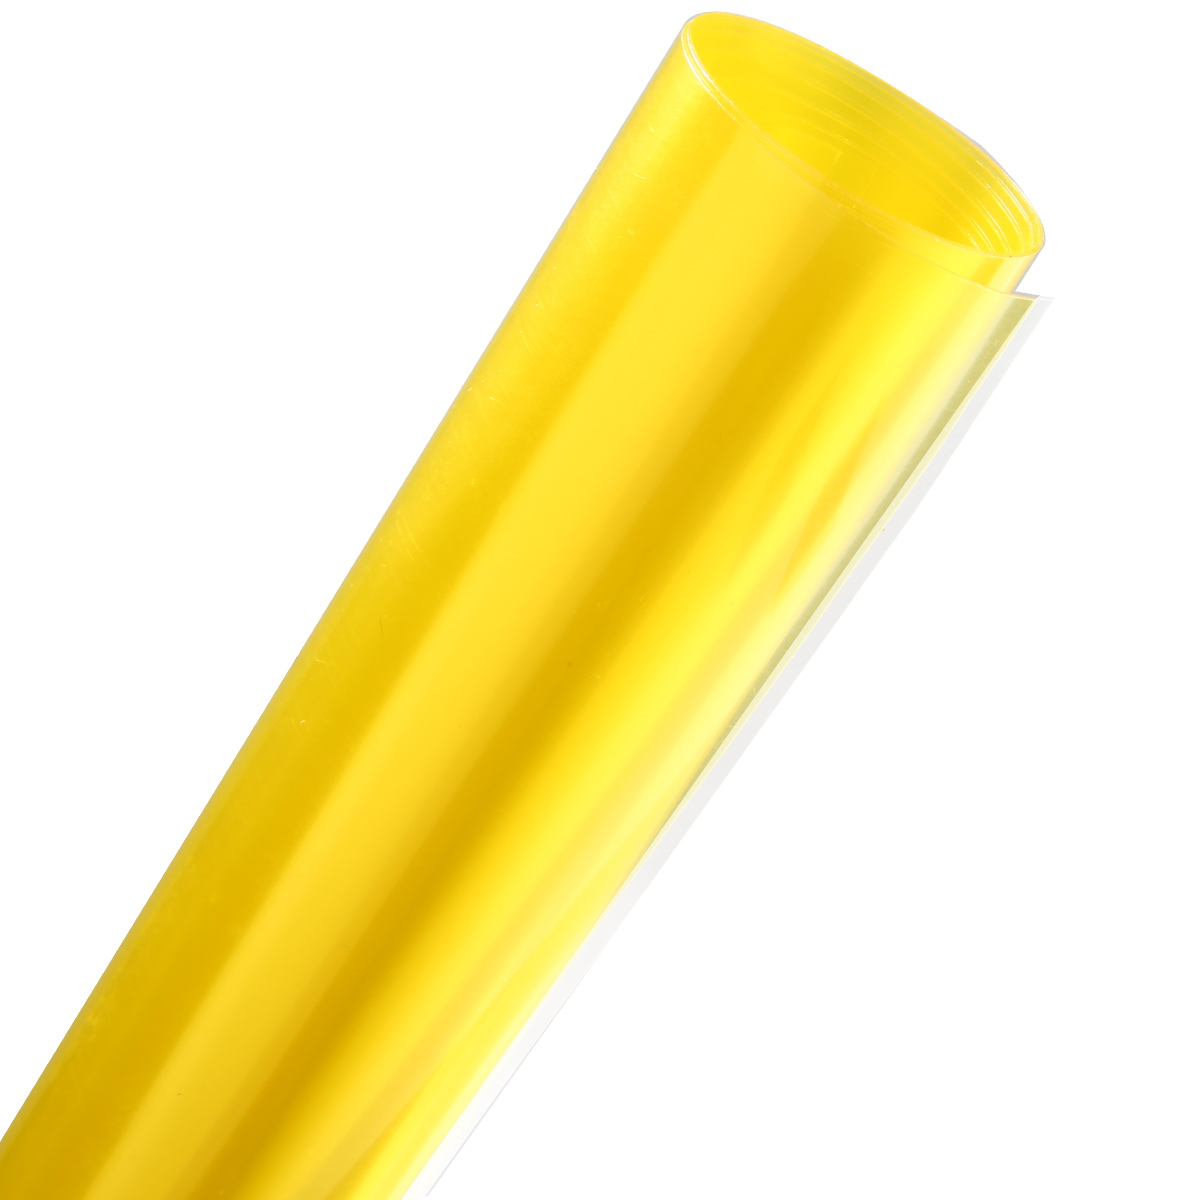 60x30CM Yellow Car Headlight Taillight Tint Vinyl Smoke Film Sheet Sticker Easy Stick Motorcycle Car Body Decoration